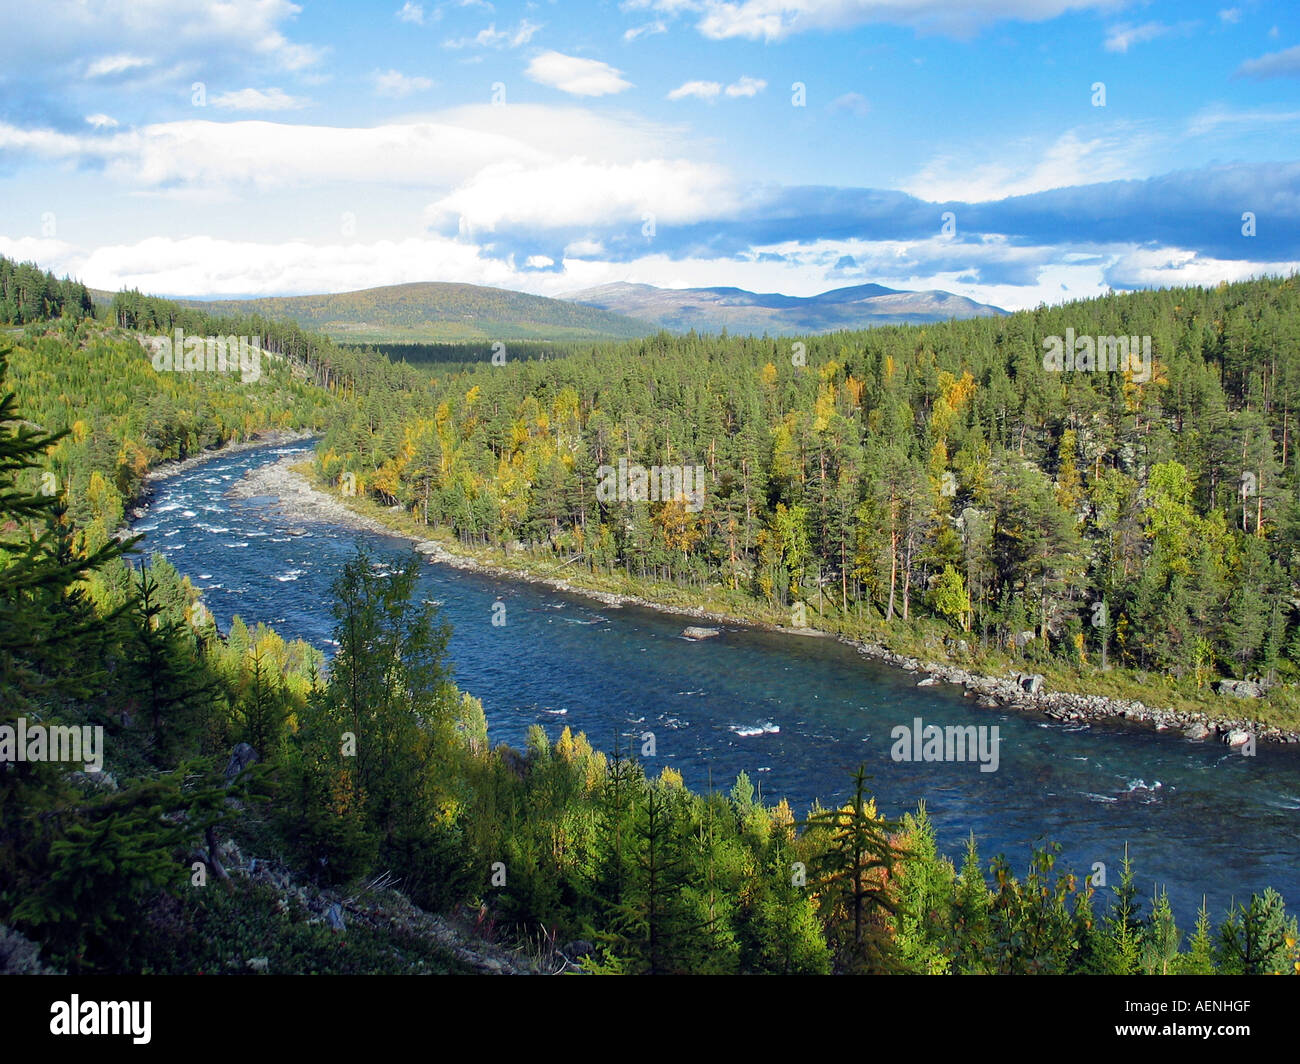 River running through green valley, Jotunheimen, Norway - Stock Image